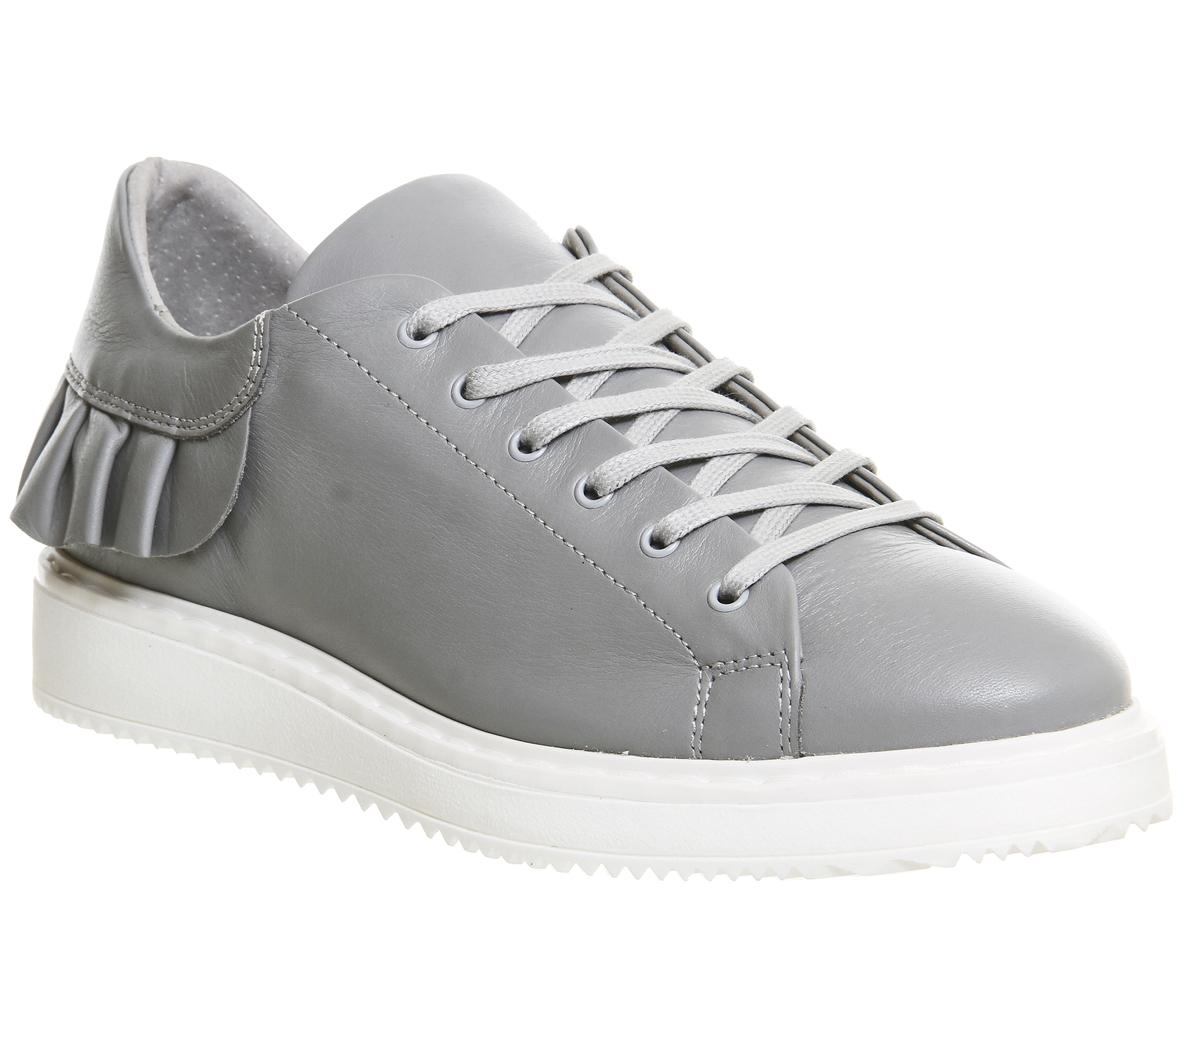 Tokyo Frill Sneakers